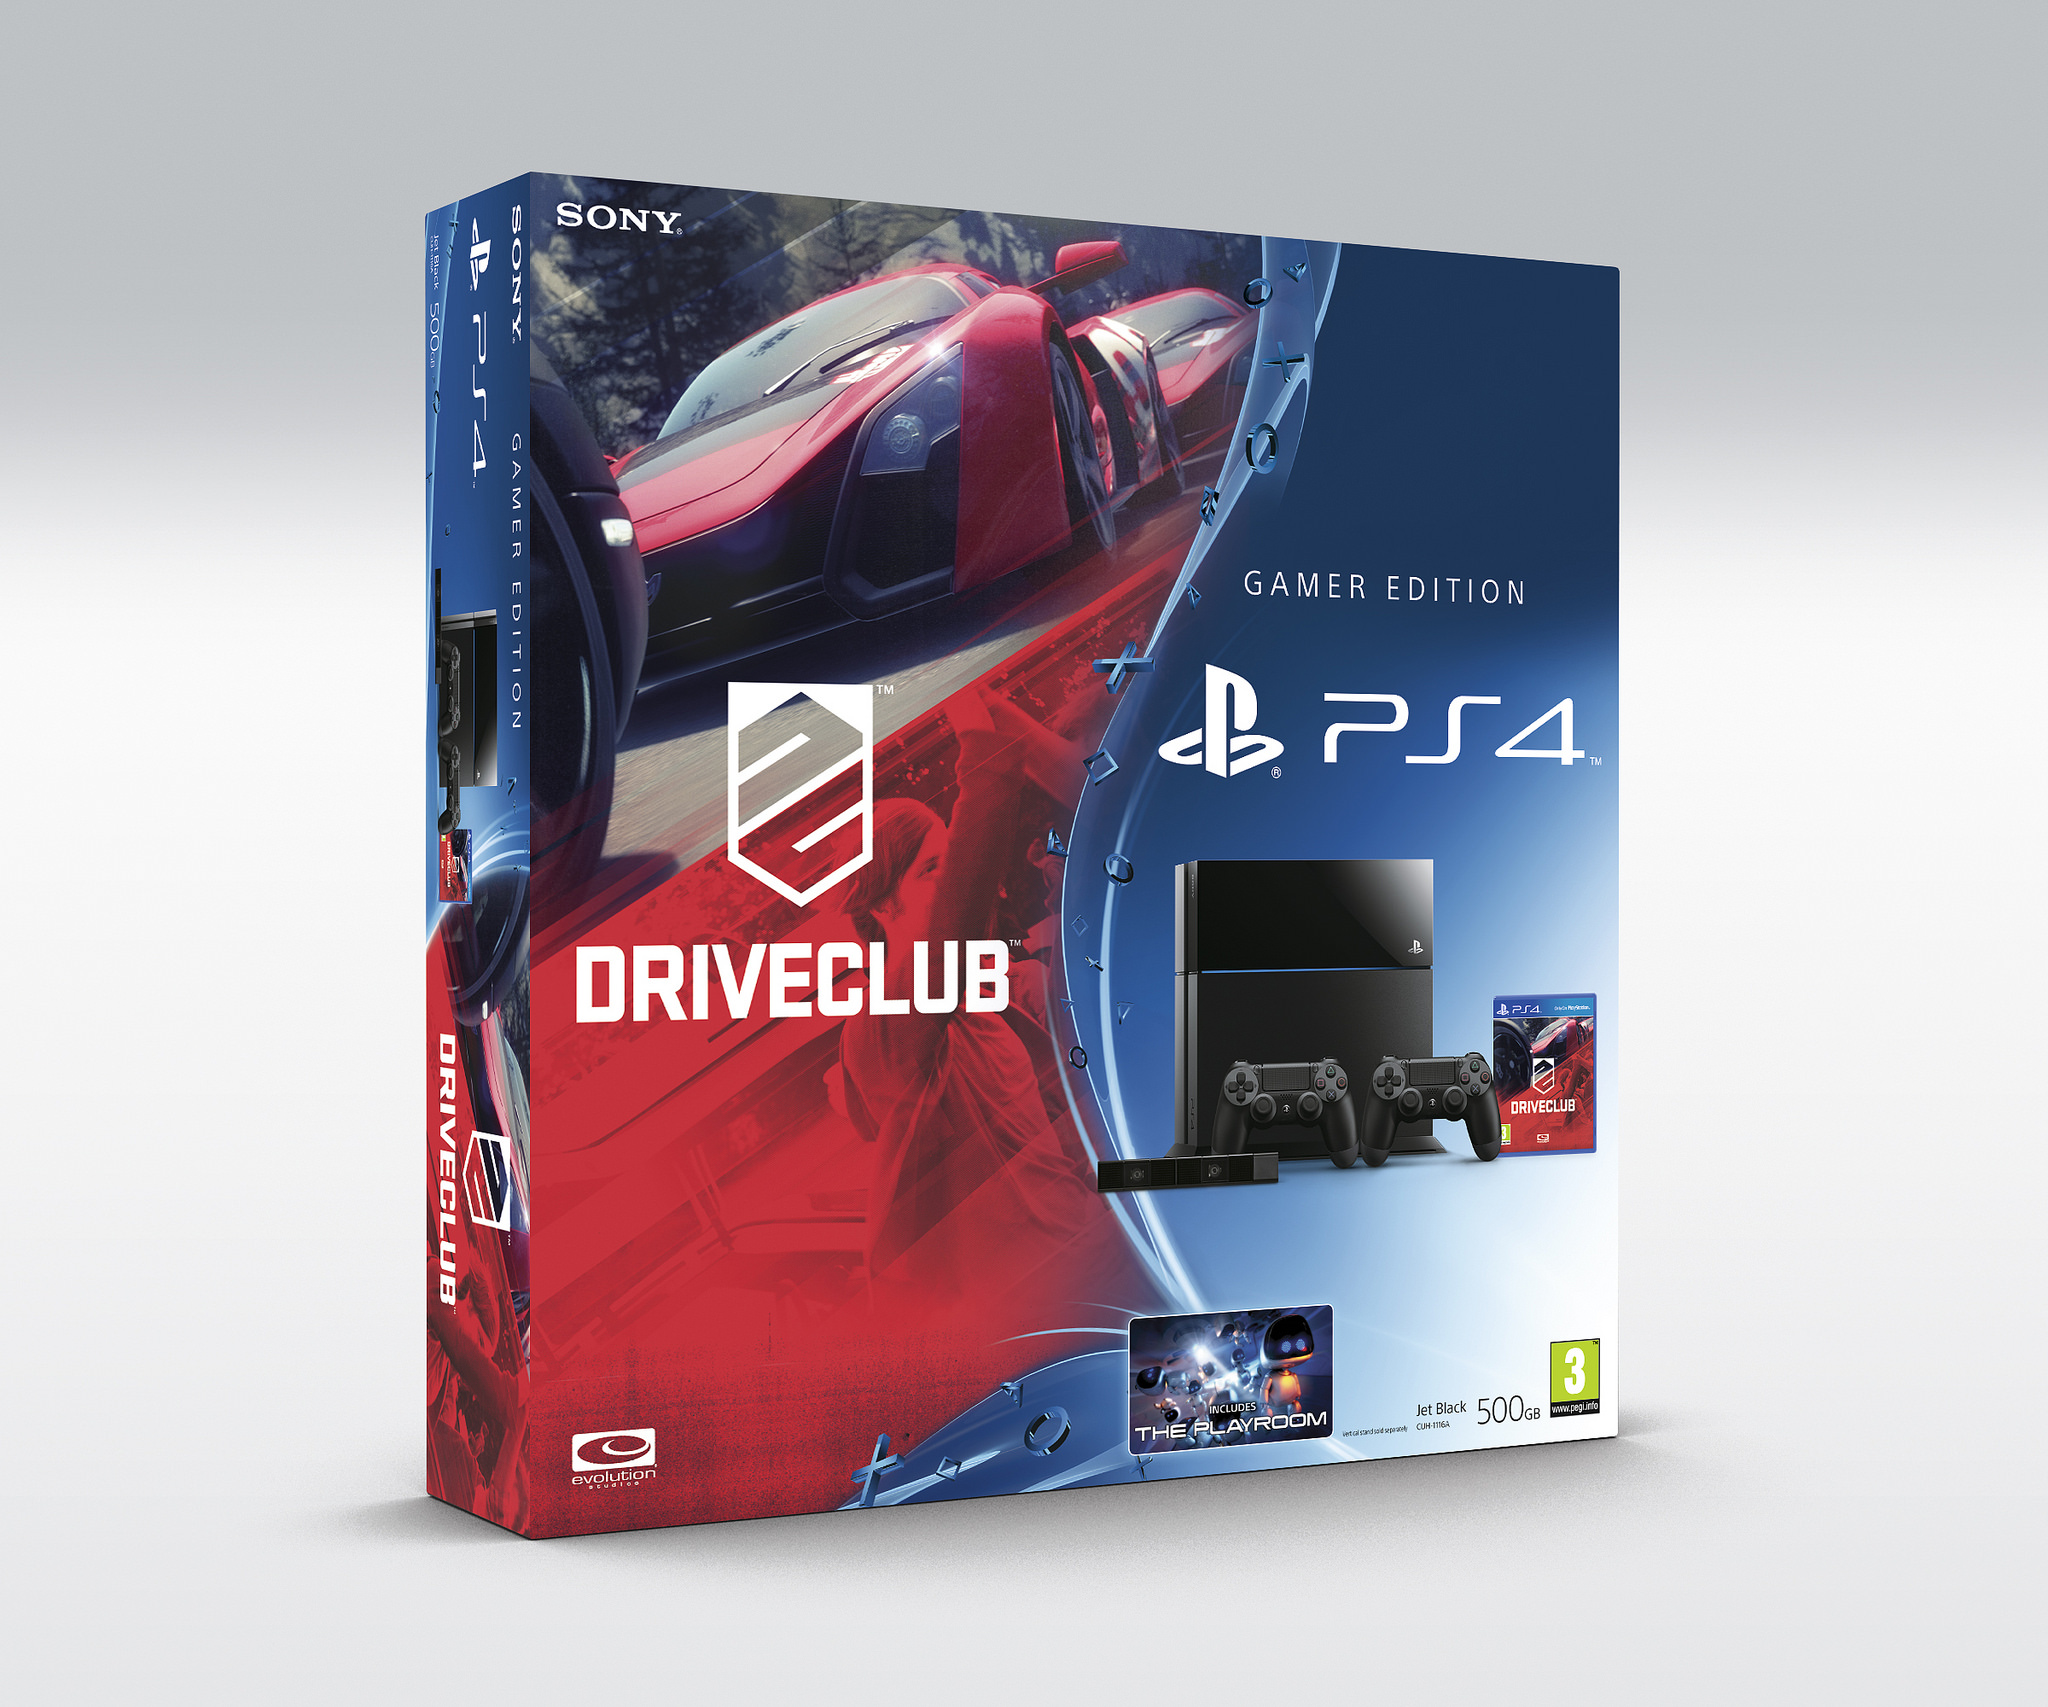 DriveClub PS4 Bundles Announced For Europe Includes White Glacier